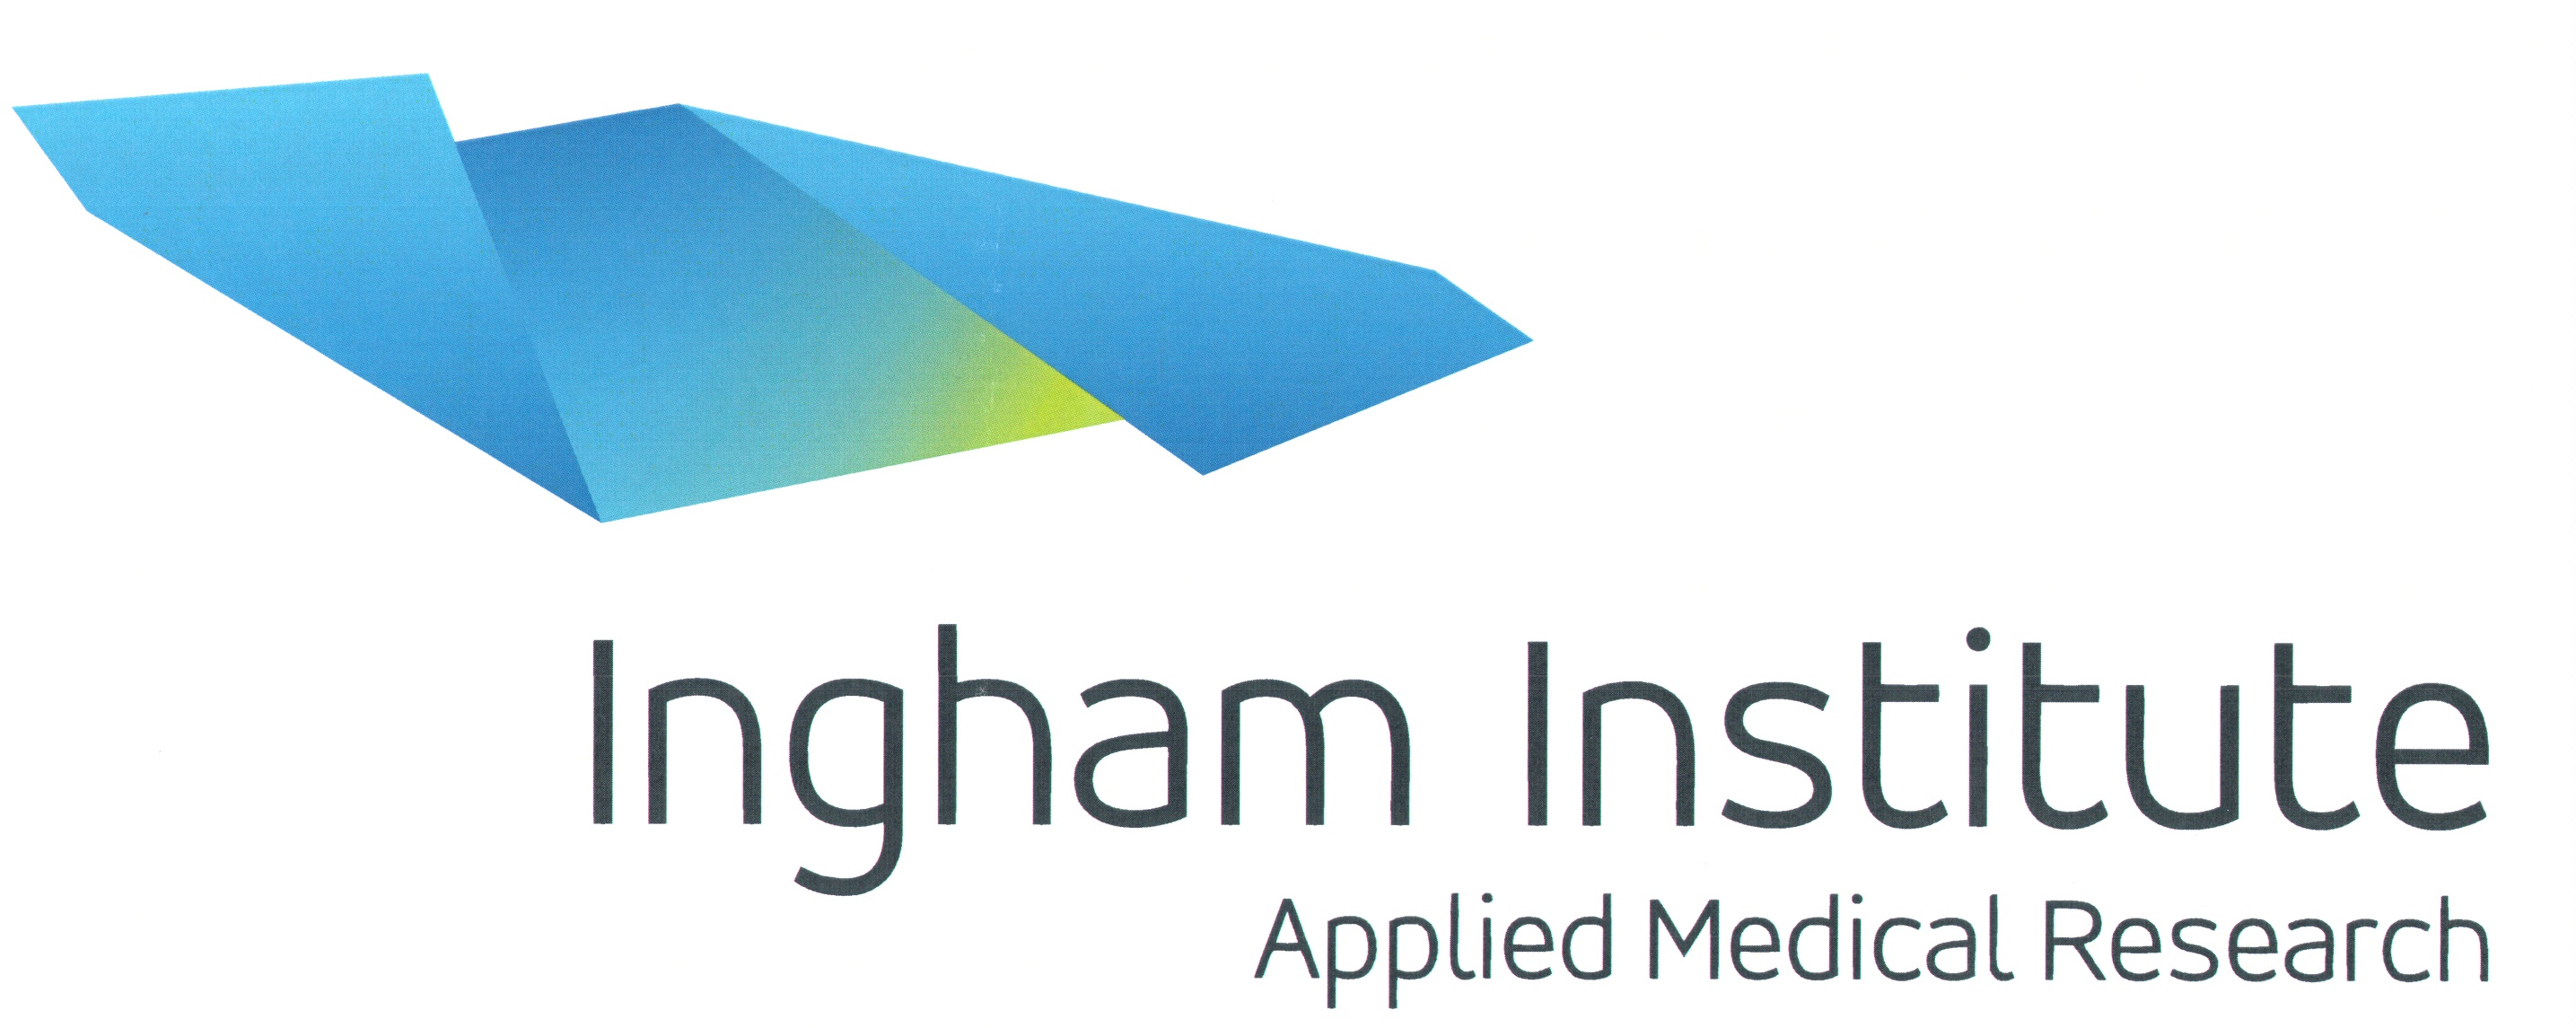 Ingham Institute Applied Medical Research logo